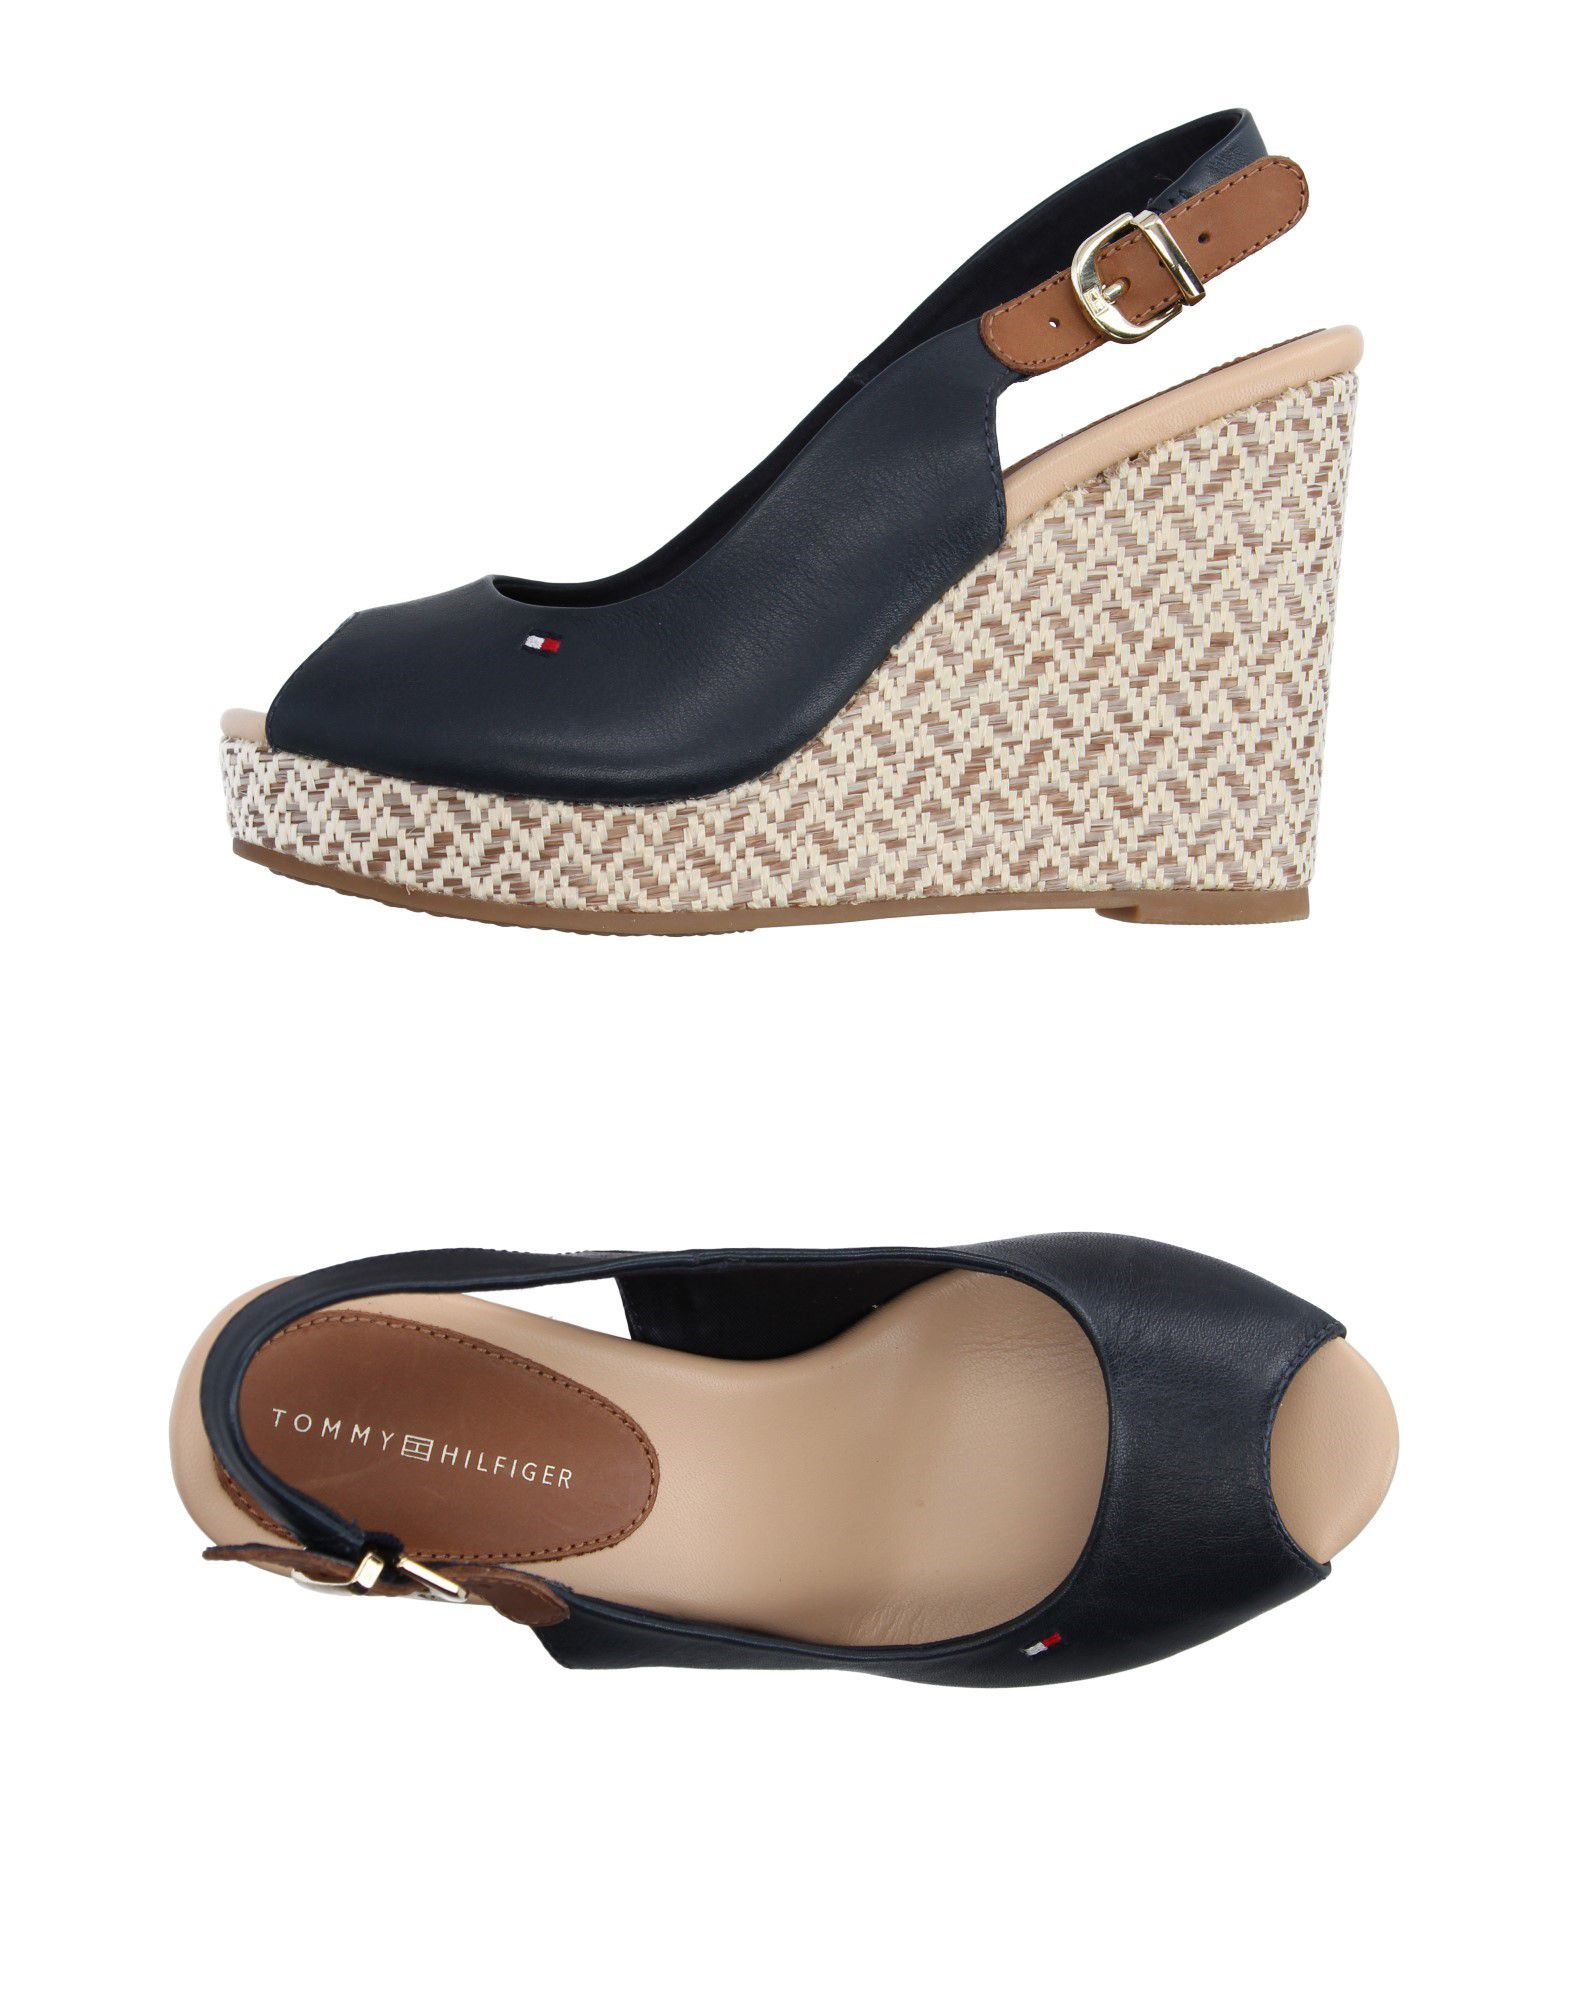 92754d5db Tommy Hilfiger Sandals - Women Tommy Hilfiger Sandals online on YOOX Canada  - 11139400DX